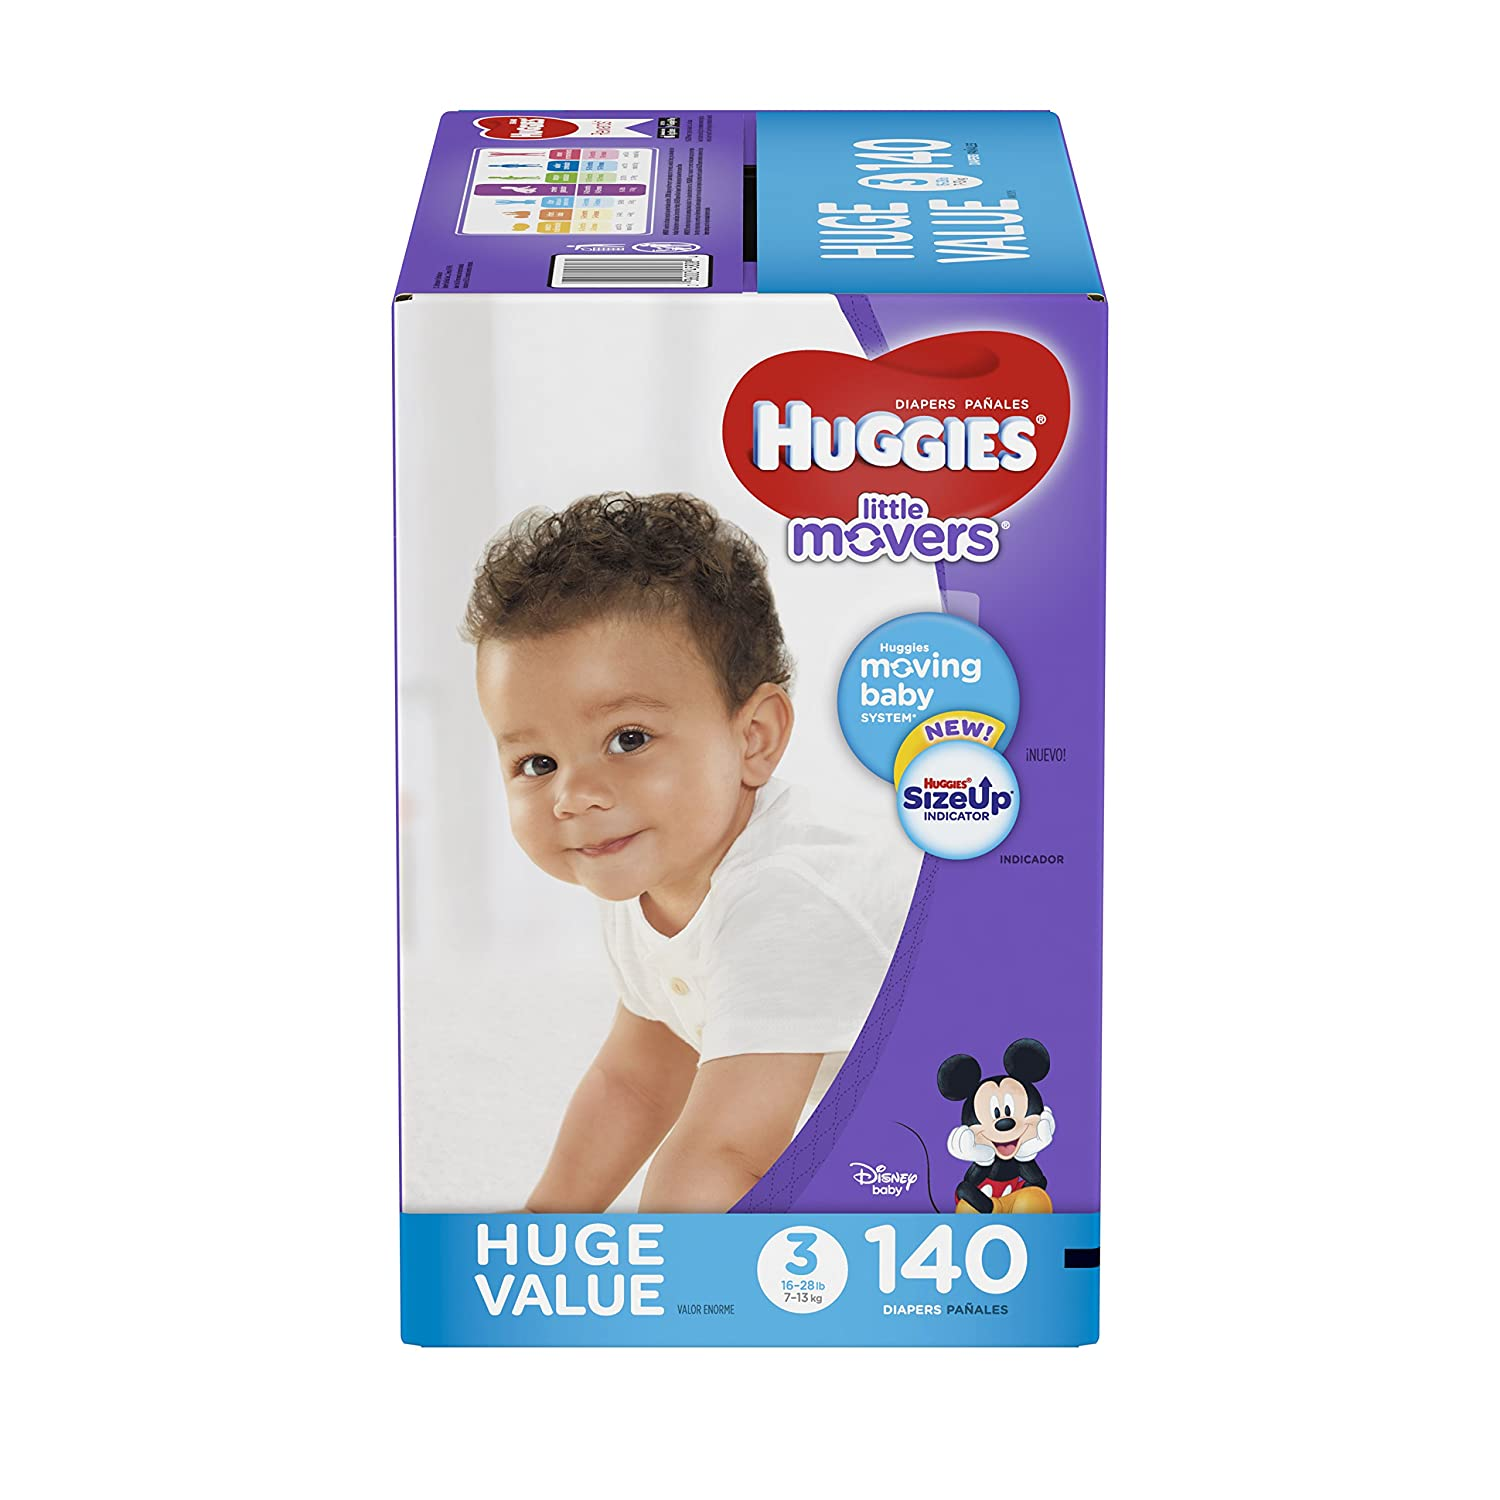 Amazon.com: HUGGIES Little Movers Diapers, Size 3 (16-28 lb.), 140 Ct, Huge Pack (Packaging May Vary), Baby Diapers for Active Babies: Health & Personal ...